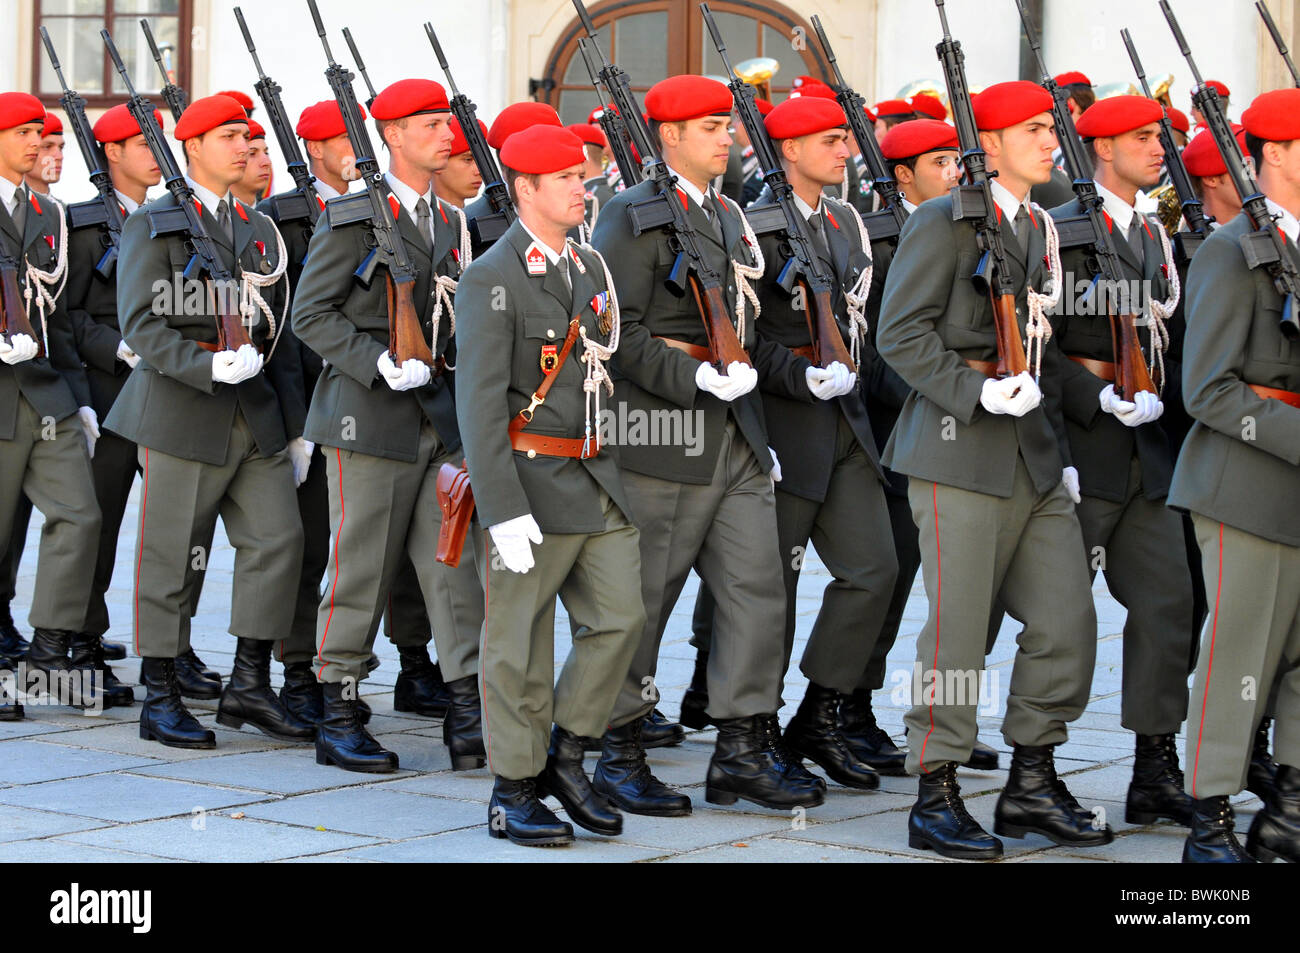 Austrian soldiers parade, Austria - Stock Image